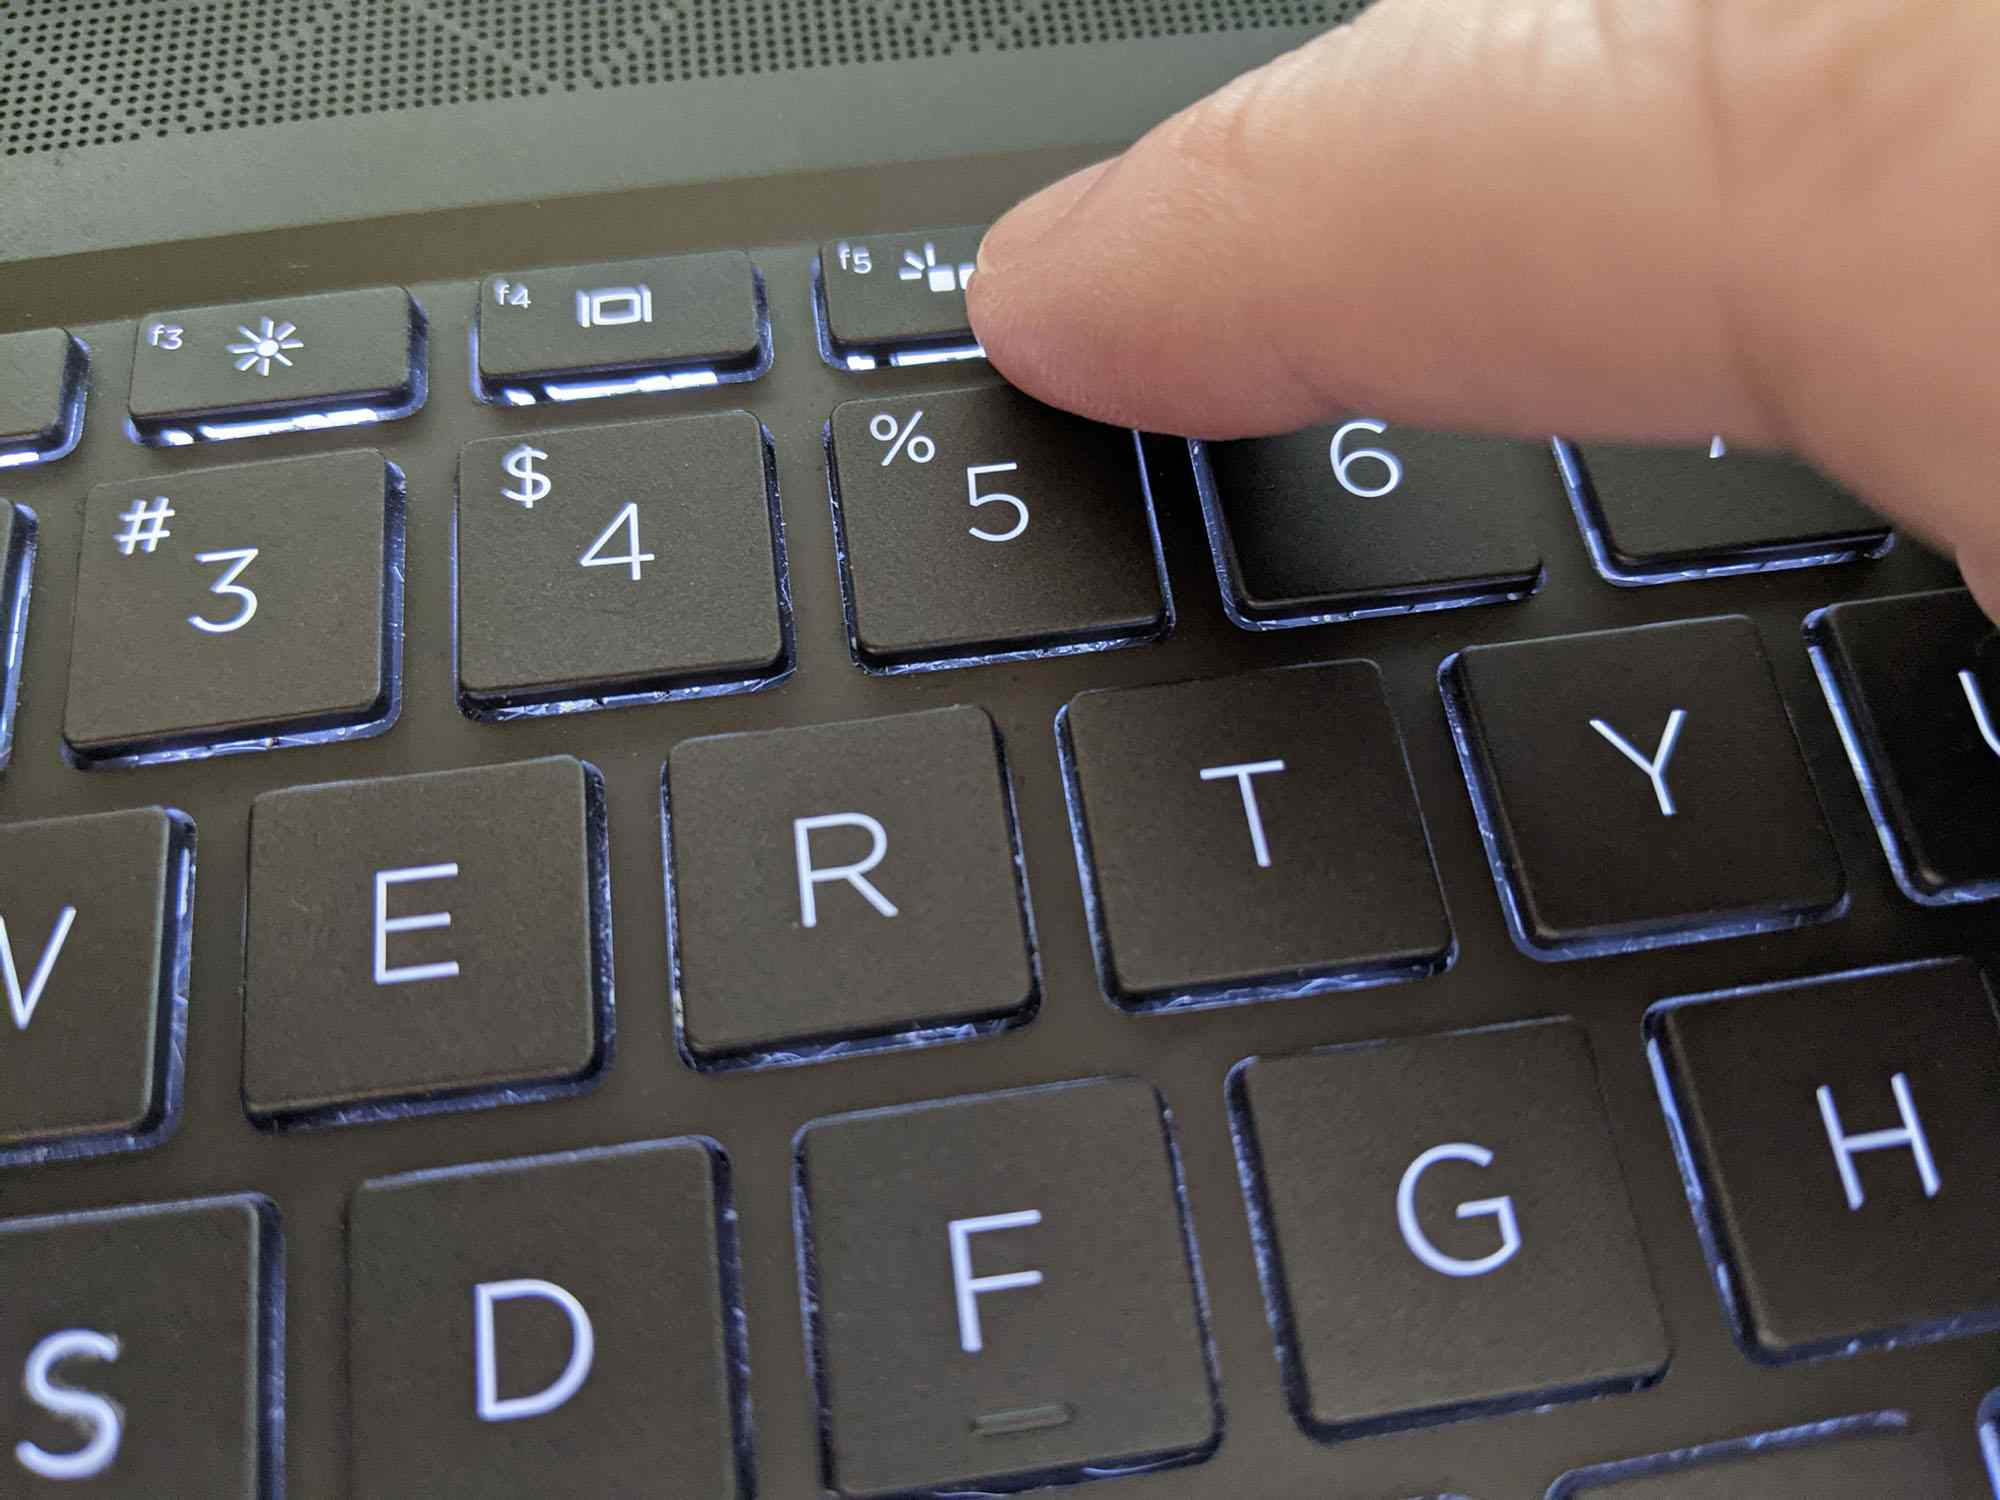 Pressing the keyboard light button on a Windows laptop.